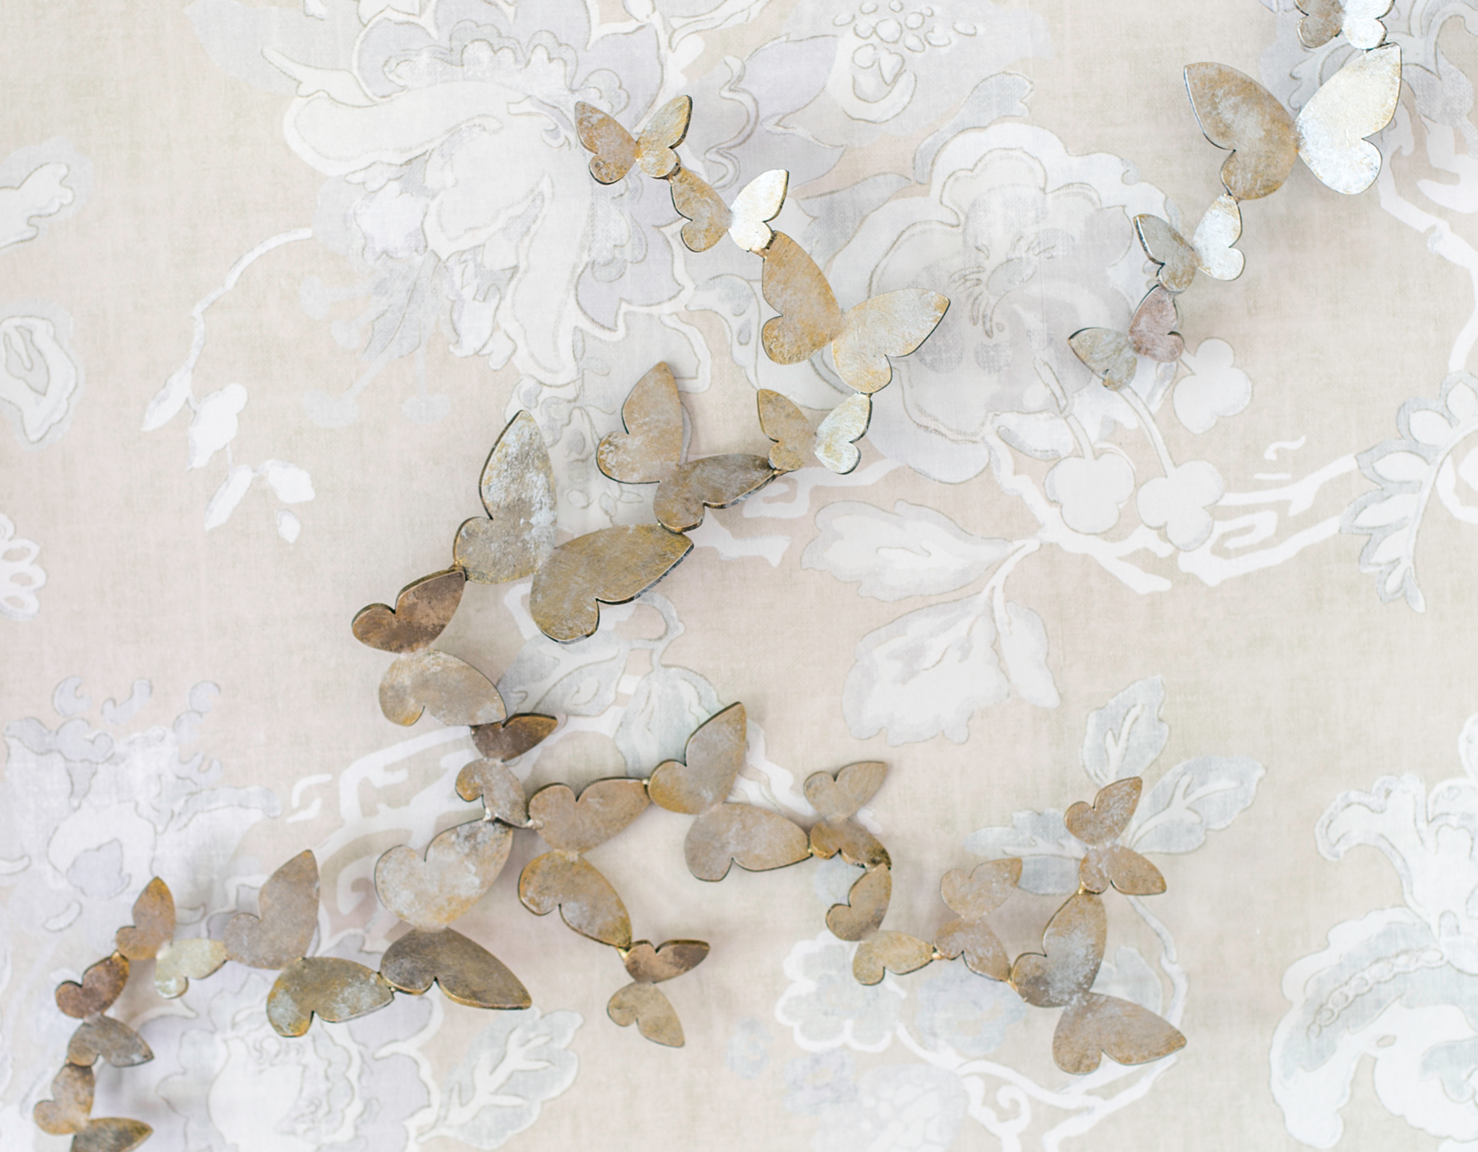 Claire-Crowe-Butterflies-Wall-Decor-Shannon_Crain_Interiors.png